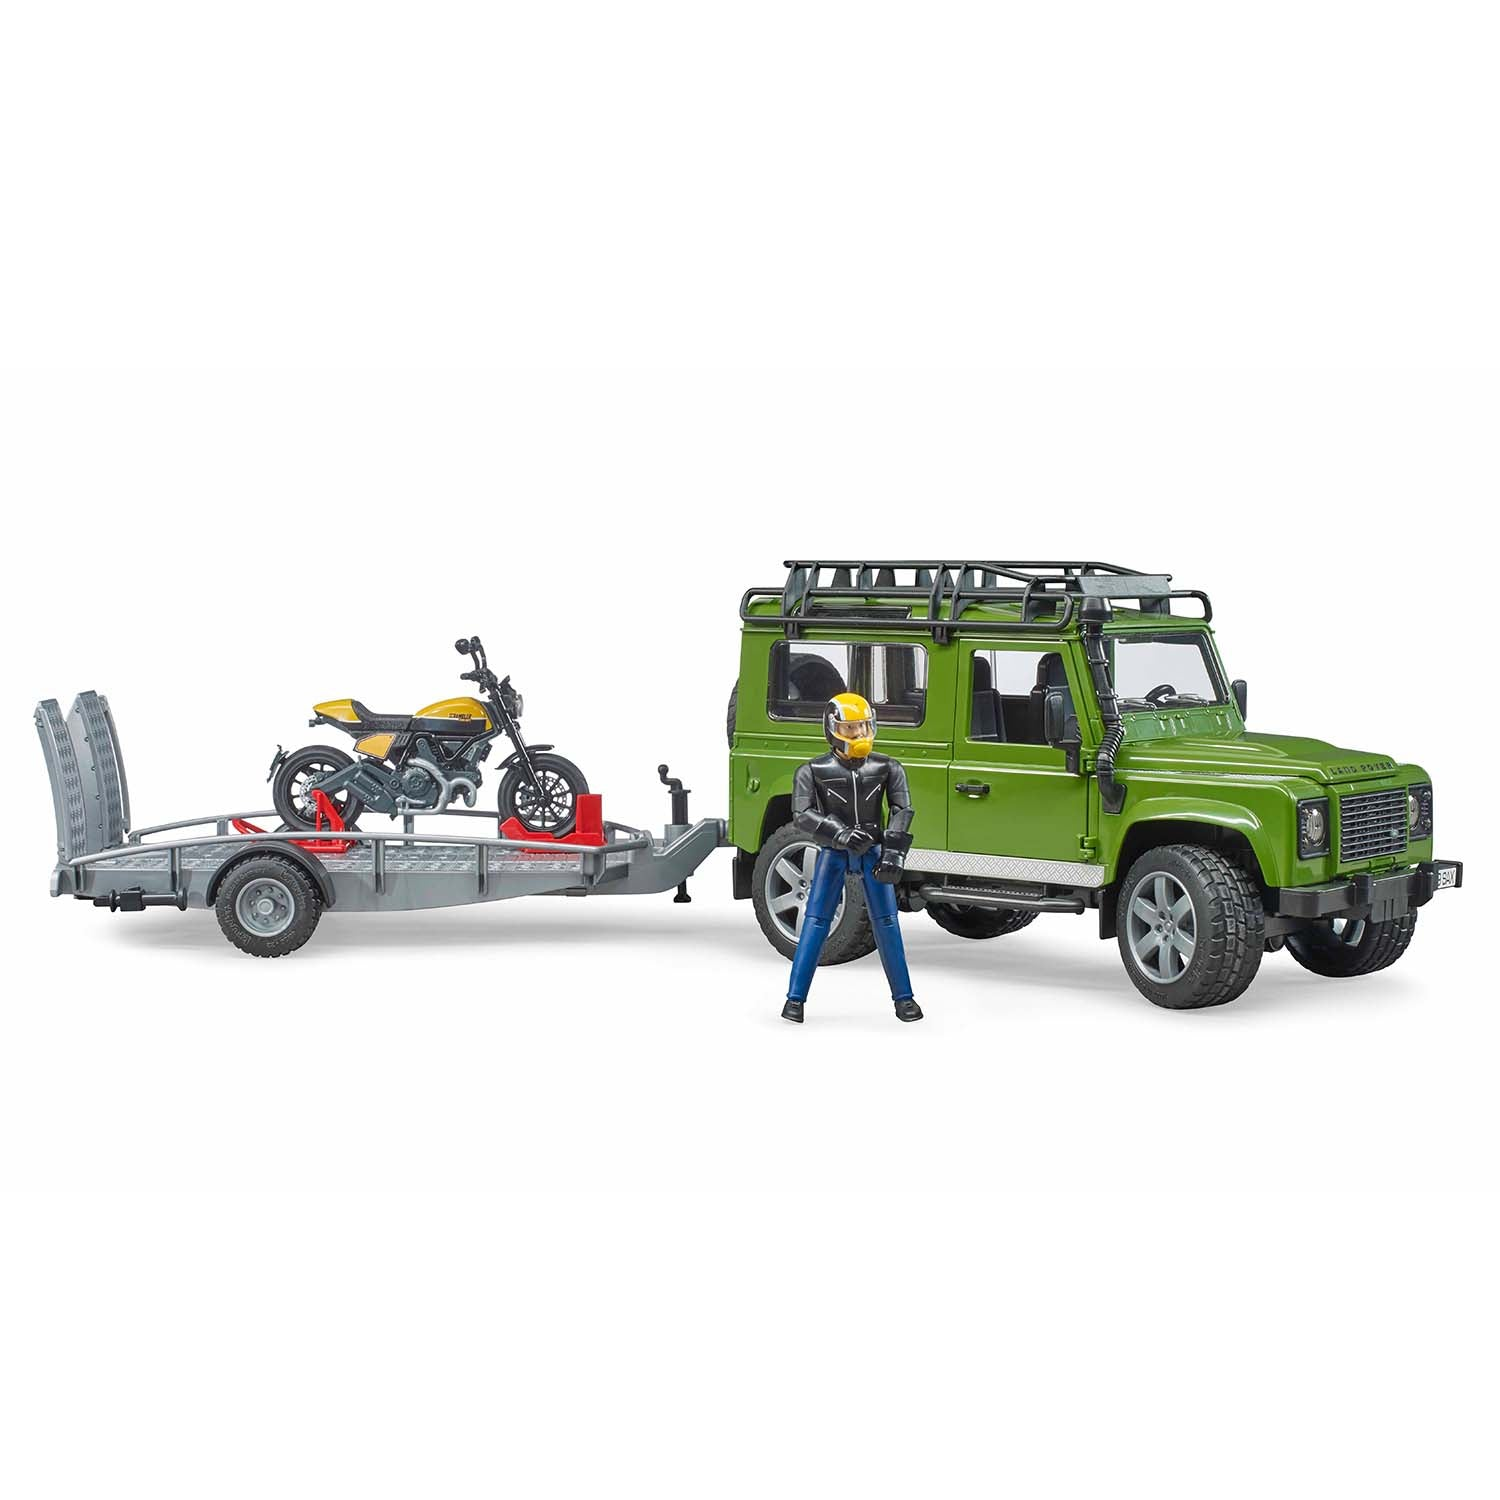 Land Rover Defender with trailer, Scrambler Ducati Full Throttle and driver